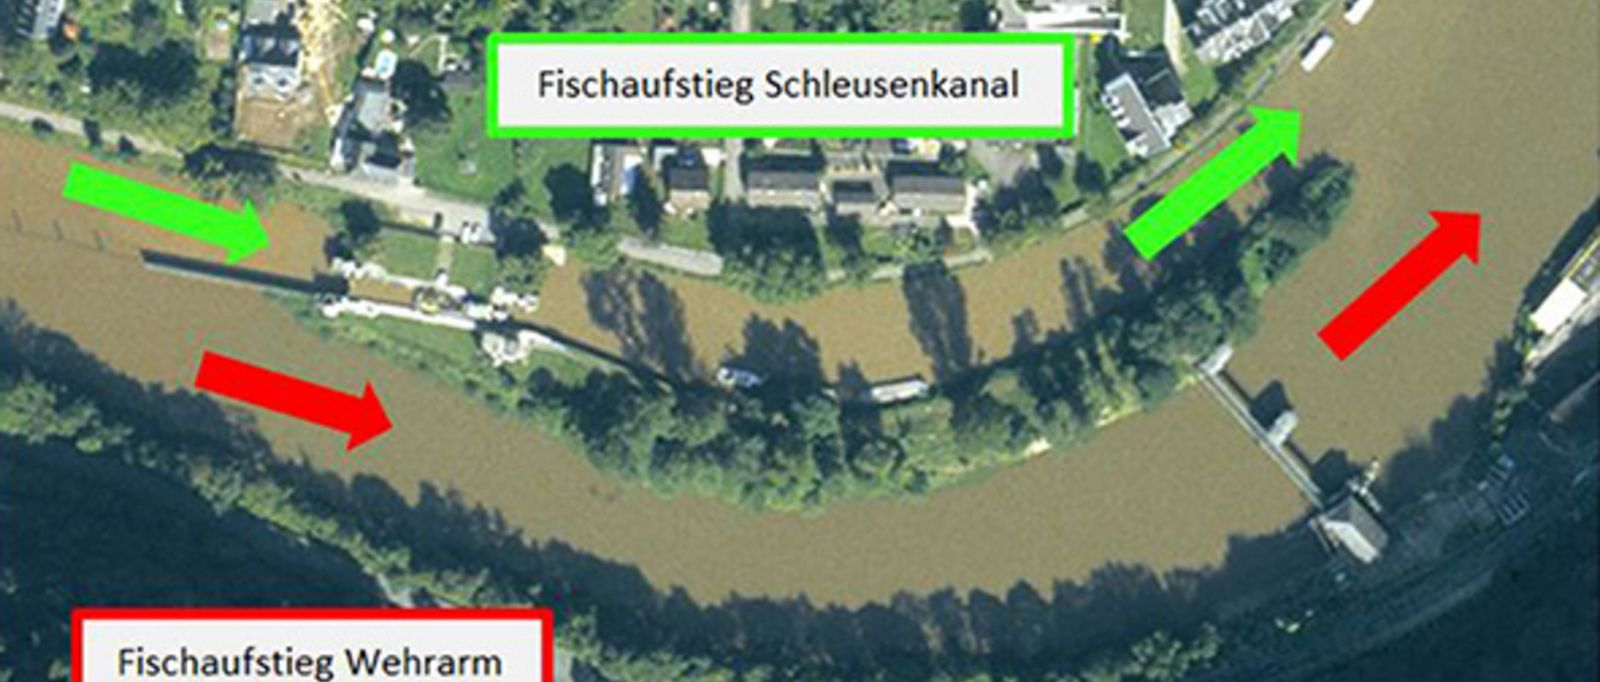 [Translate to English:] Fischschleusung